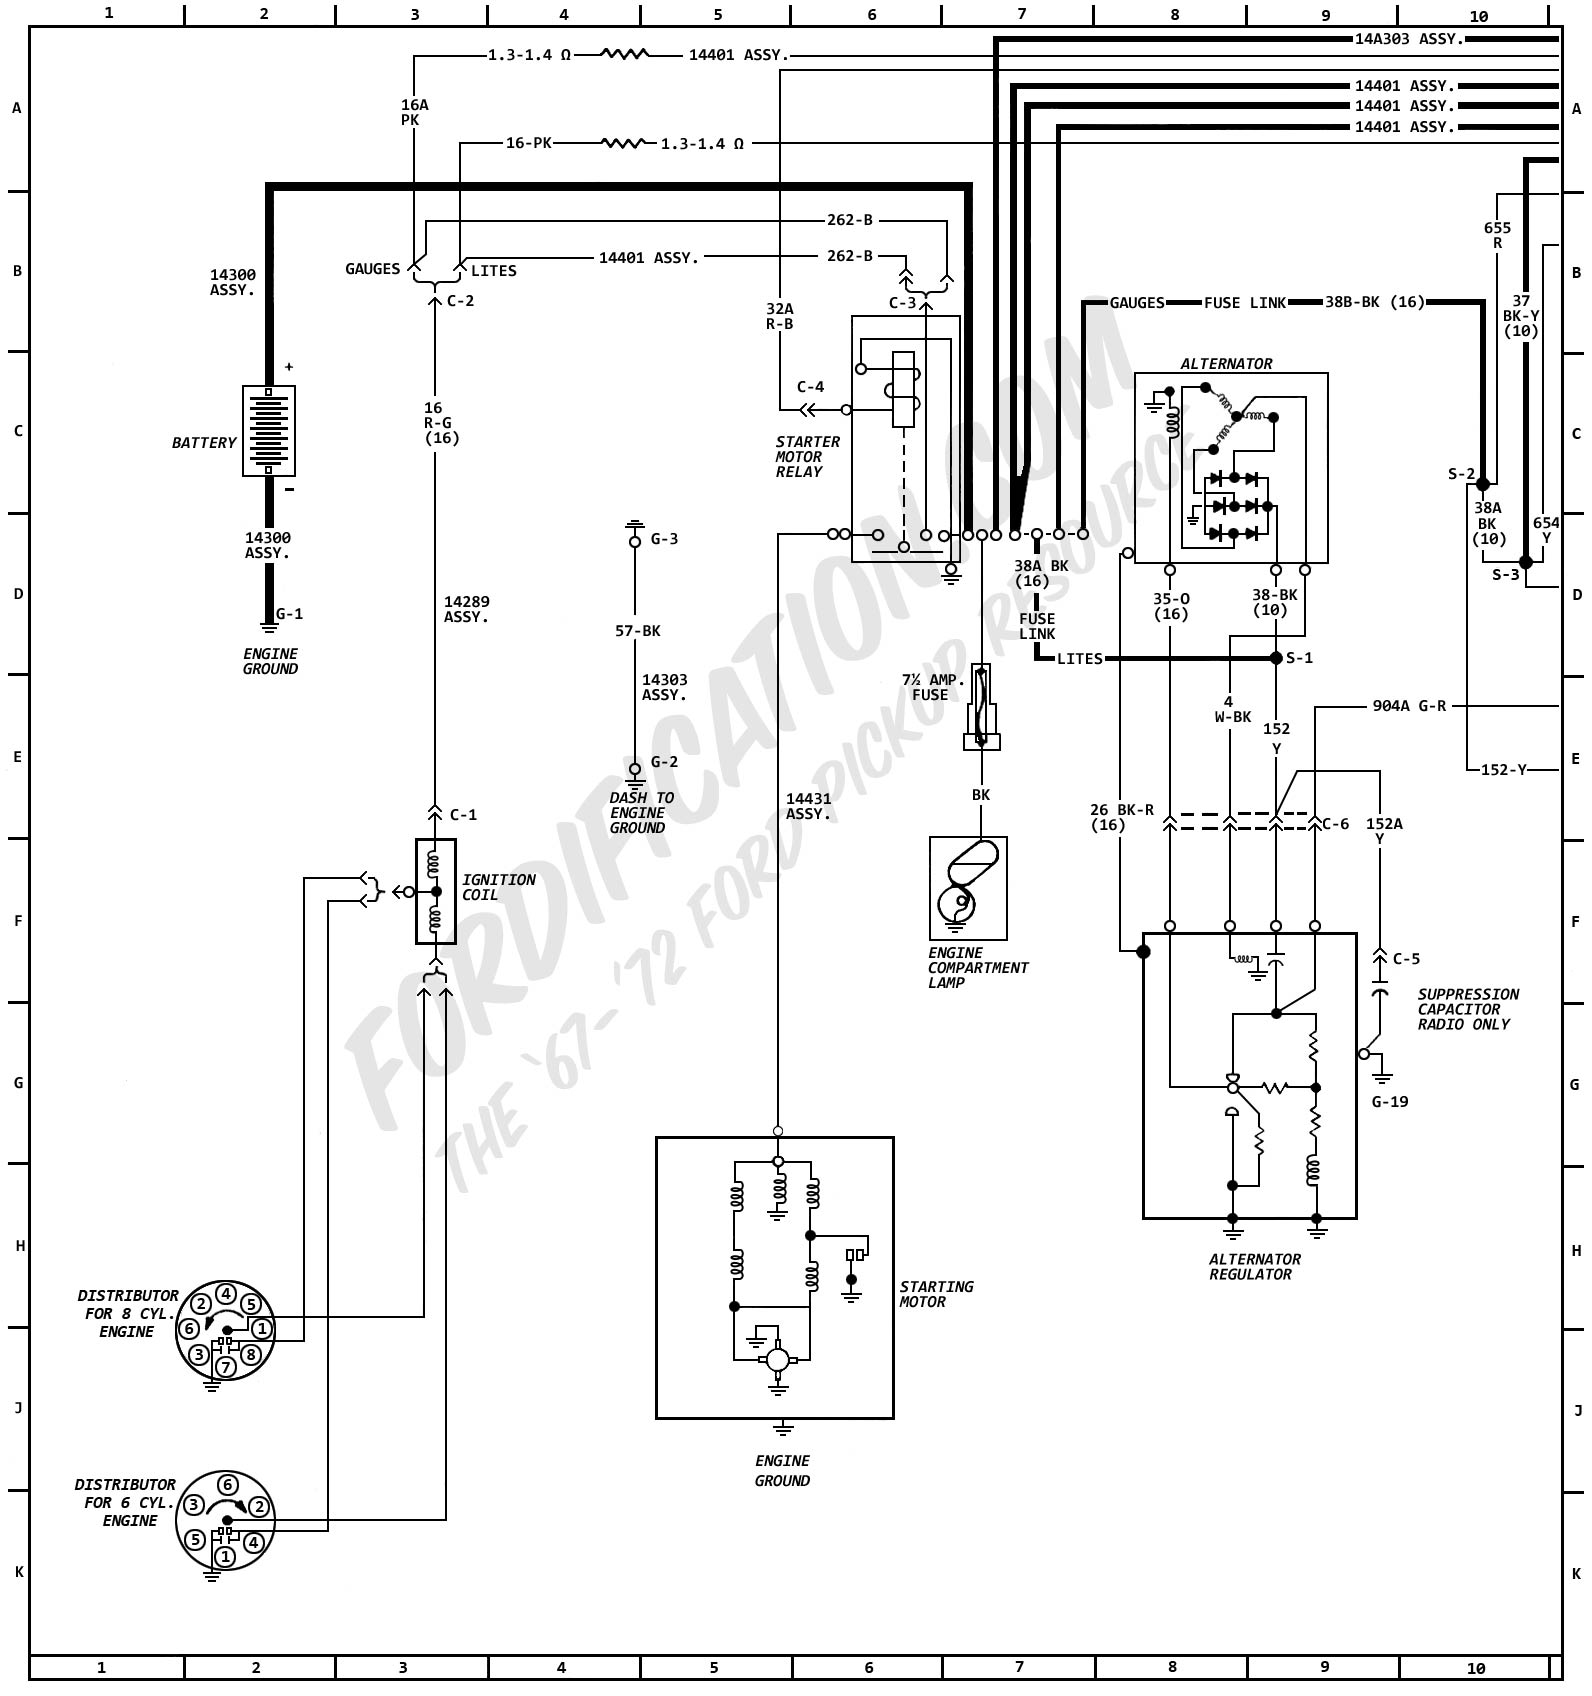 Ford F150 Wiring Schematic 1979 Ranchero Diagram Reveolution Of 72 Diagrams Rh Theodocle Fion Com F 150 Starter